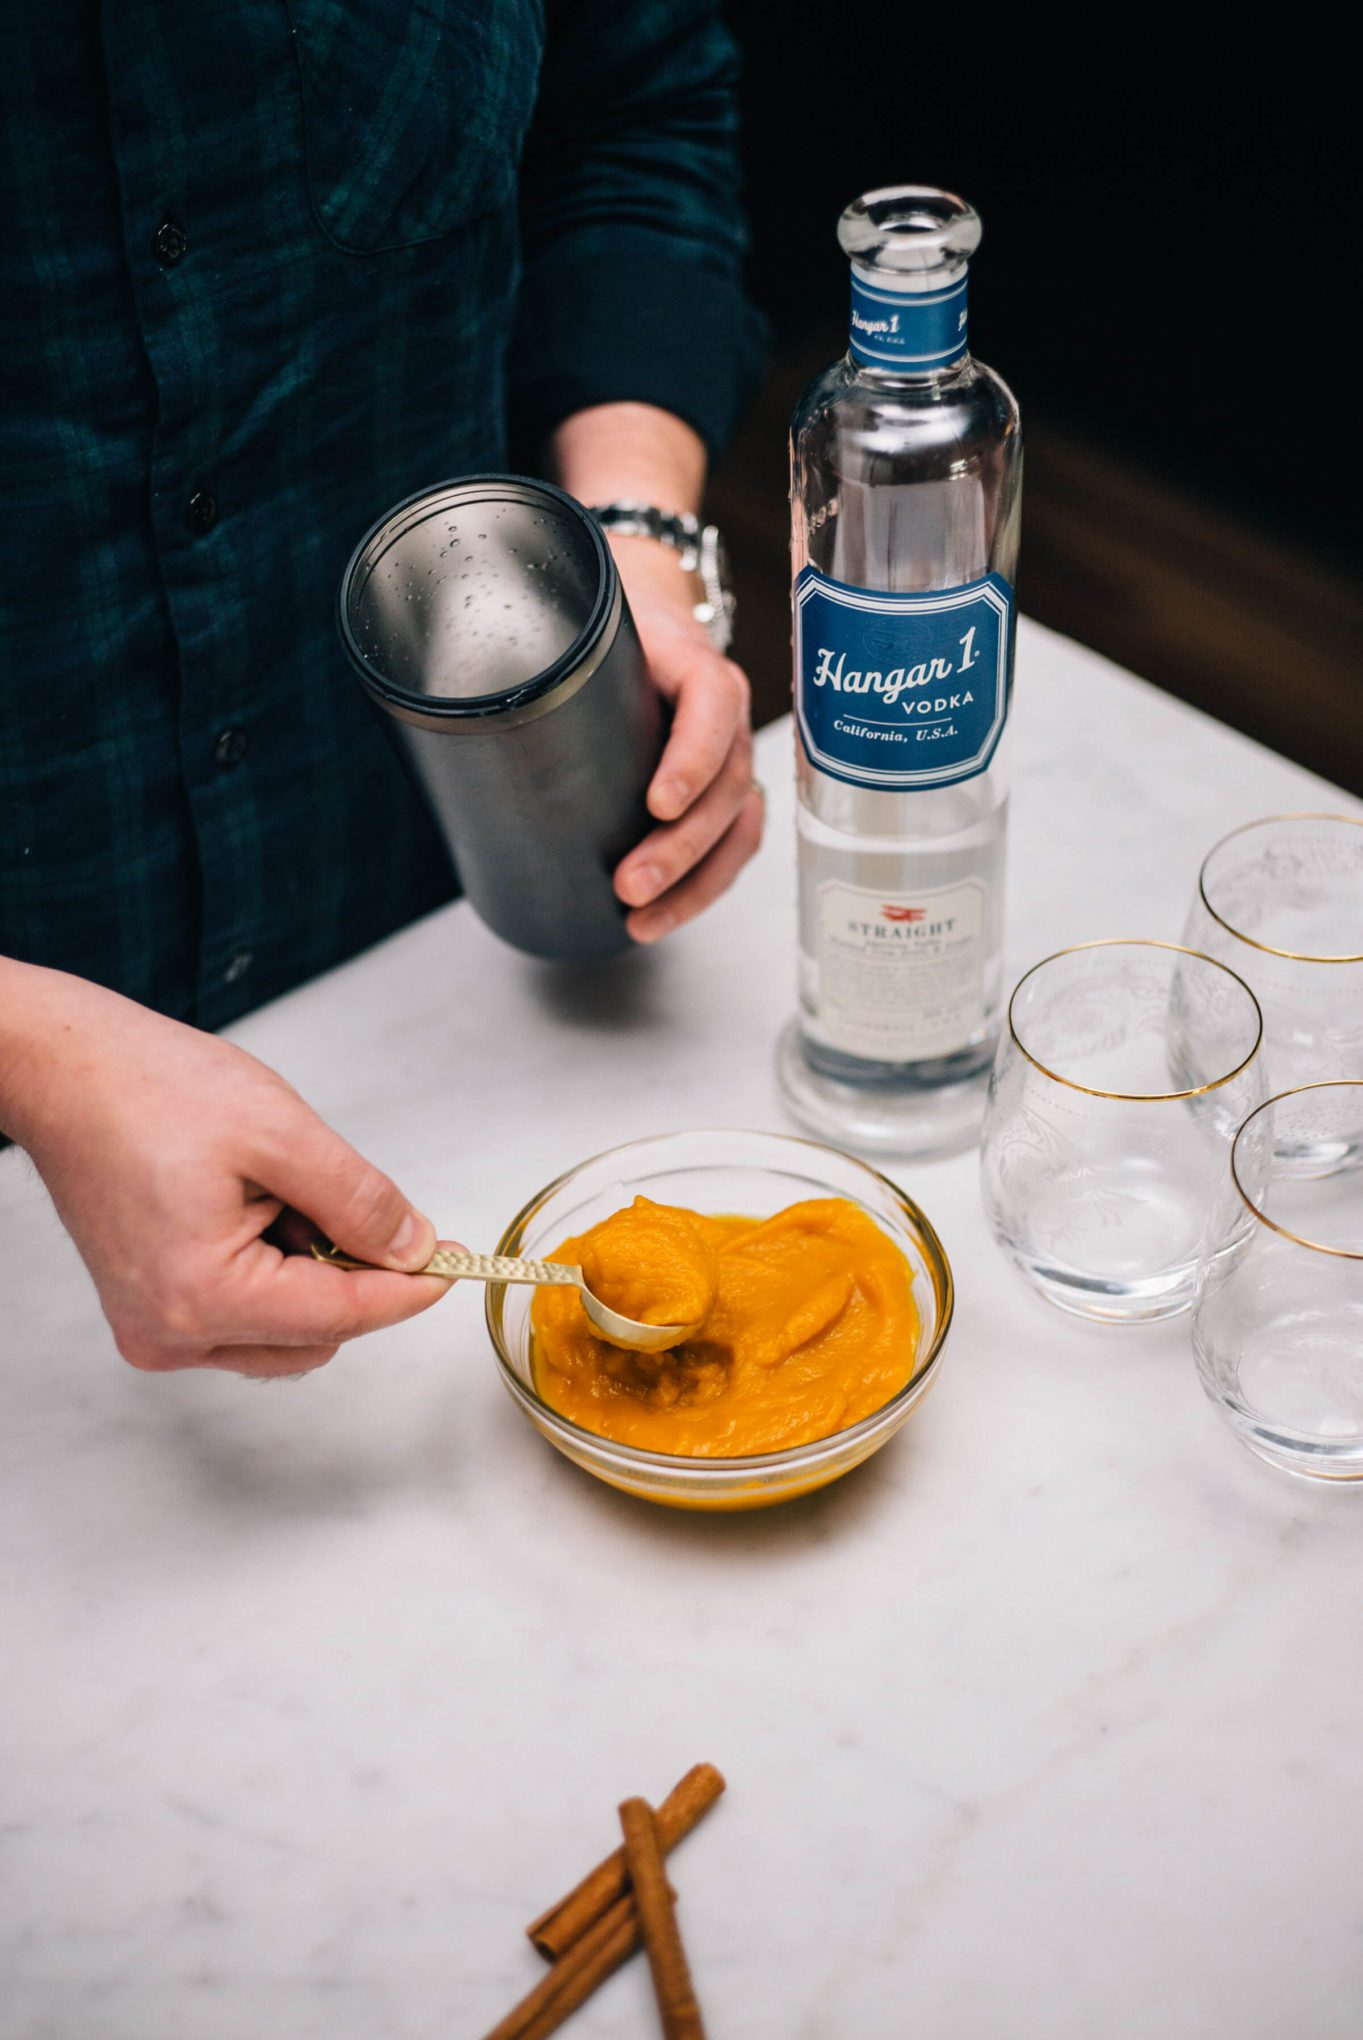 The Taste SF adds freshly roasted pumpkin puree, like you would use to make a pumpkin pie, with Hangar 1 Straight Vodka to makes Pumpkin Spice Cocktails